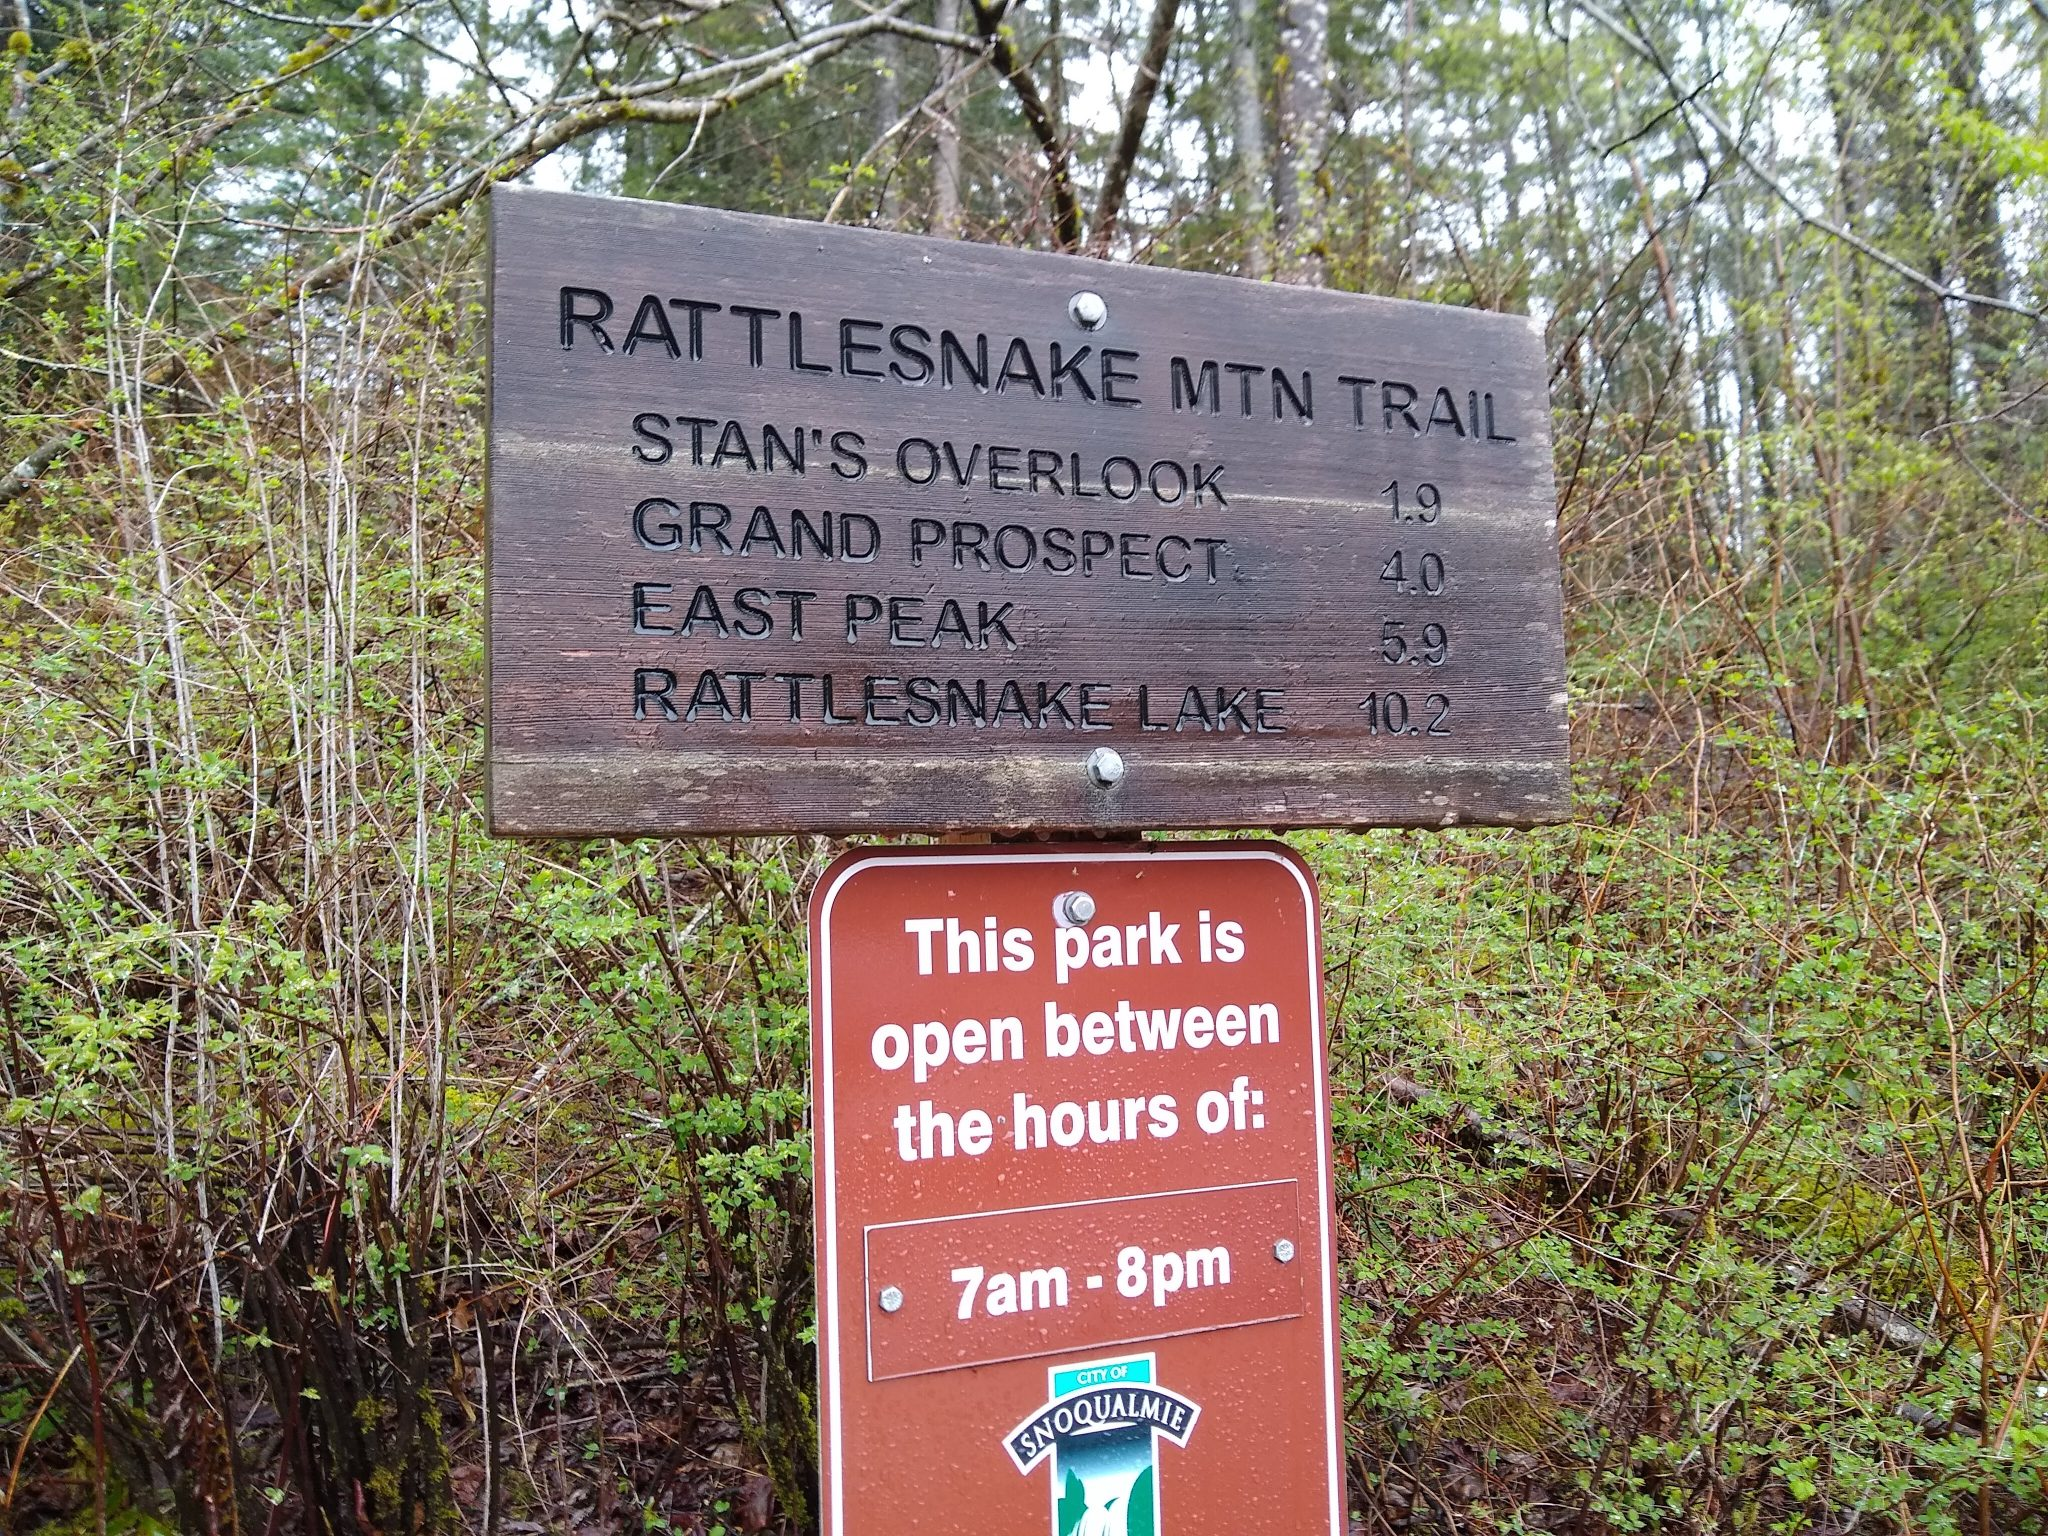 A wooden sign notes the distance to various destinations on the Rattlesnake Mountain Trail.